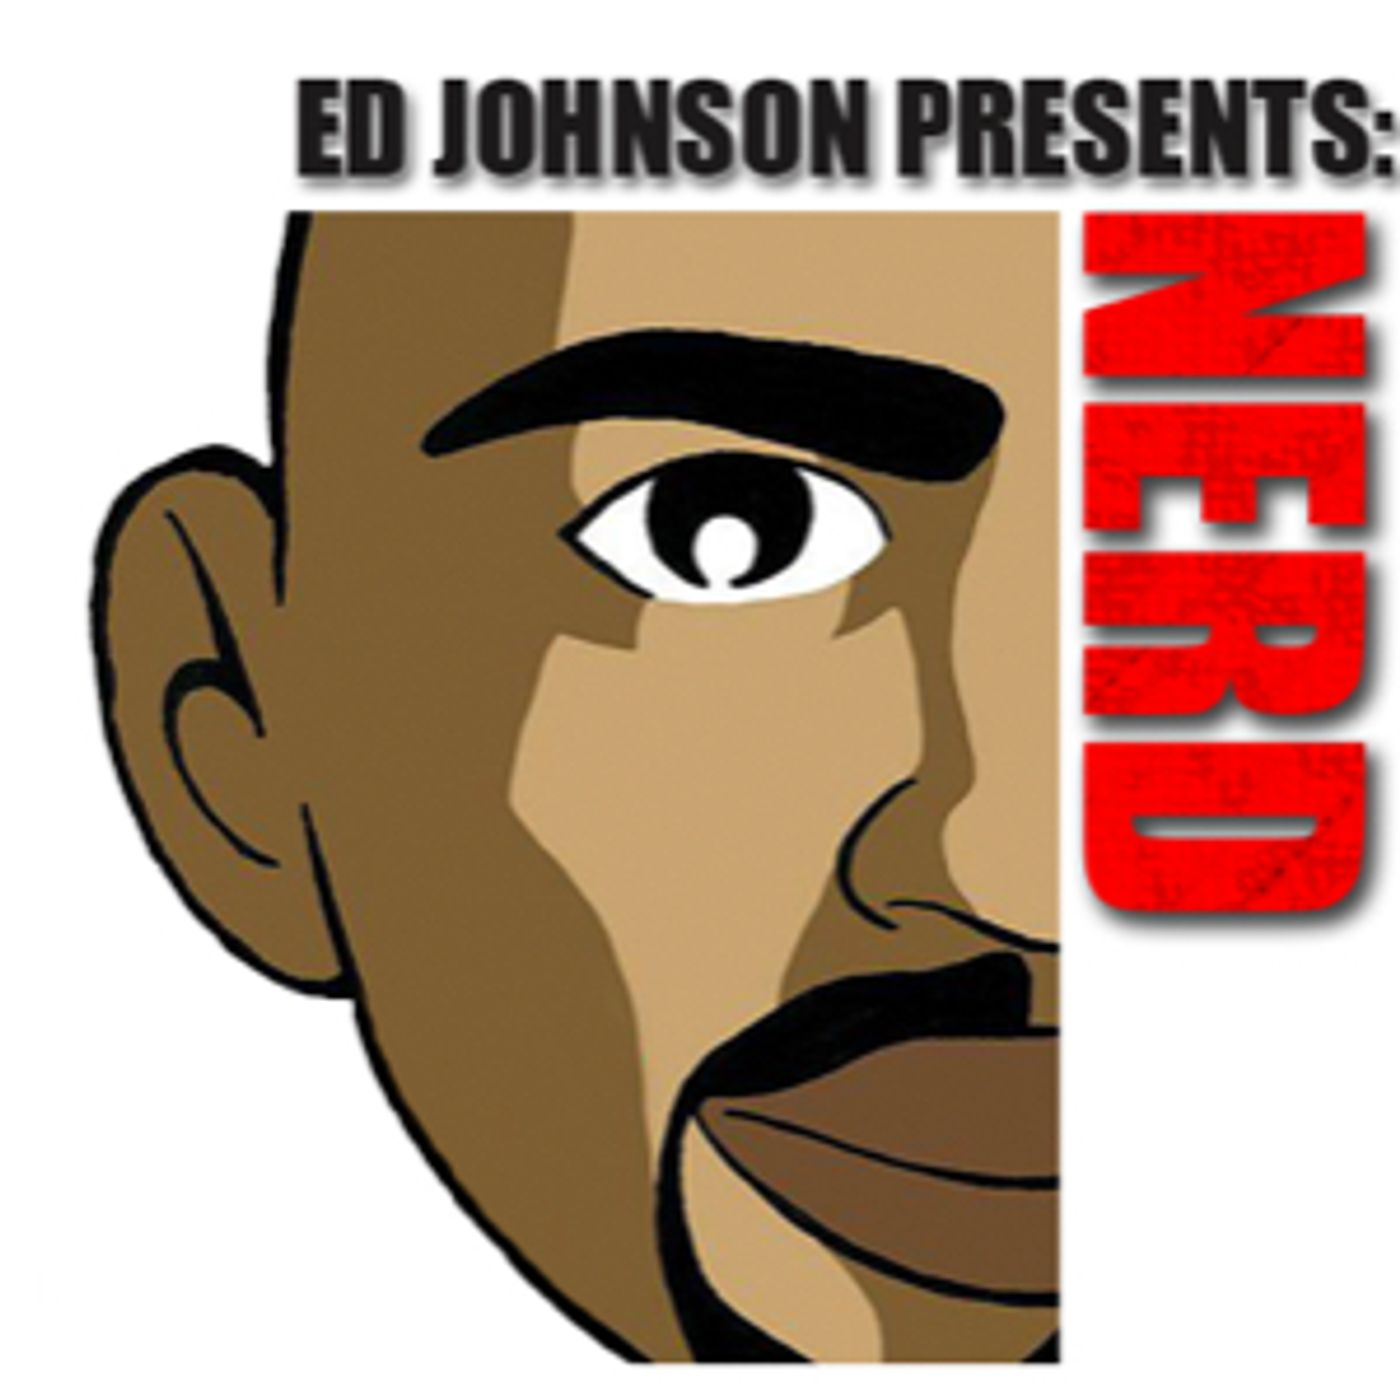 Ed Johnson Presents NERD